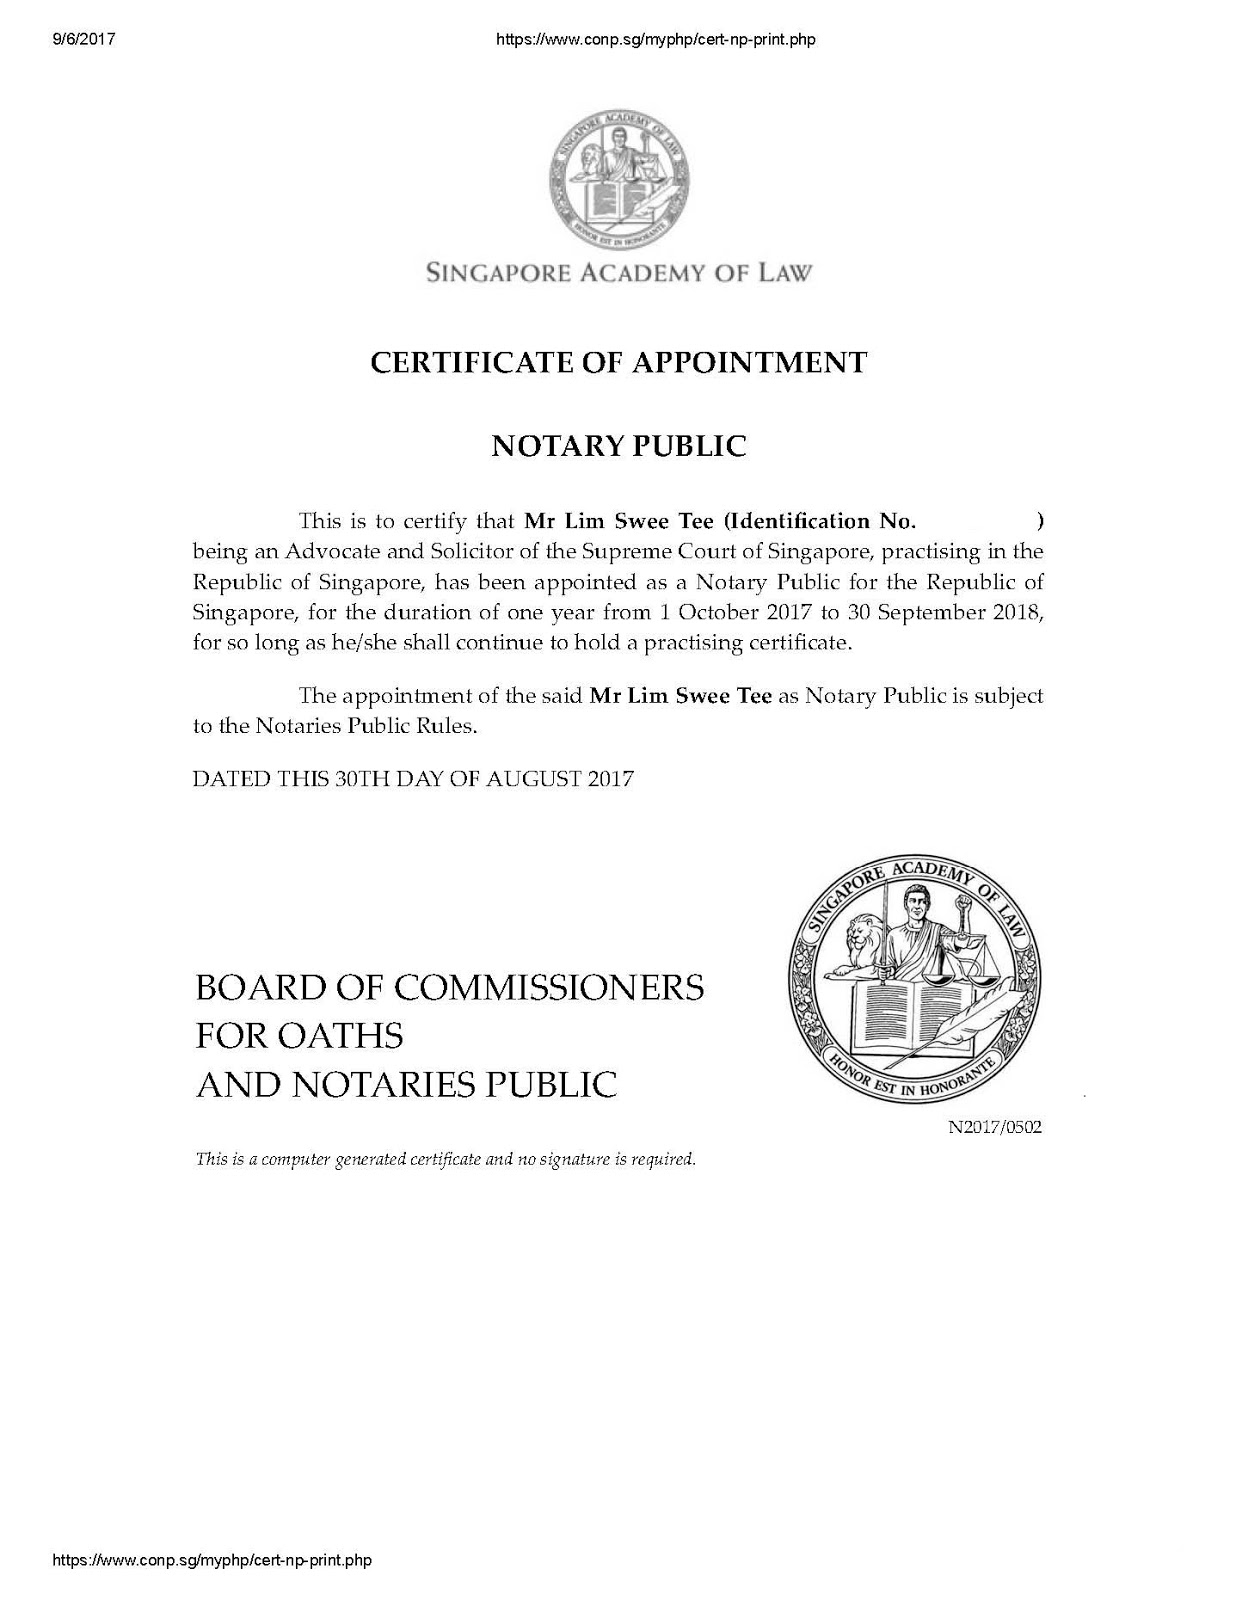 Singapore Notary Public Certified Translations For The Ica. Beachway Therapy Center Reviews. Real Time Data Analysis Mens Hair Replacement. Degree In Food Science And Nutrition. Forensic Psychology Law Enforcement. How Much Asphalt Do I Need Advent Pc Support. Dr Mark Rubin Beverly Hills Muhly Grass Care. Coastal Cupboard Cooking Classes. Commercial Business Loan Rates